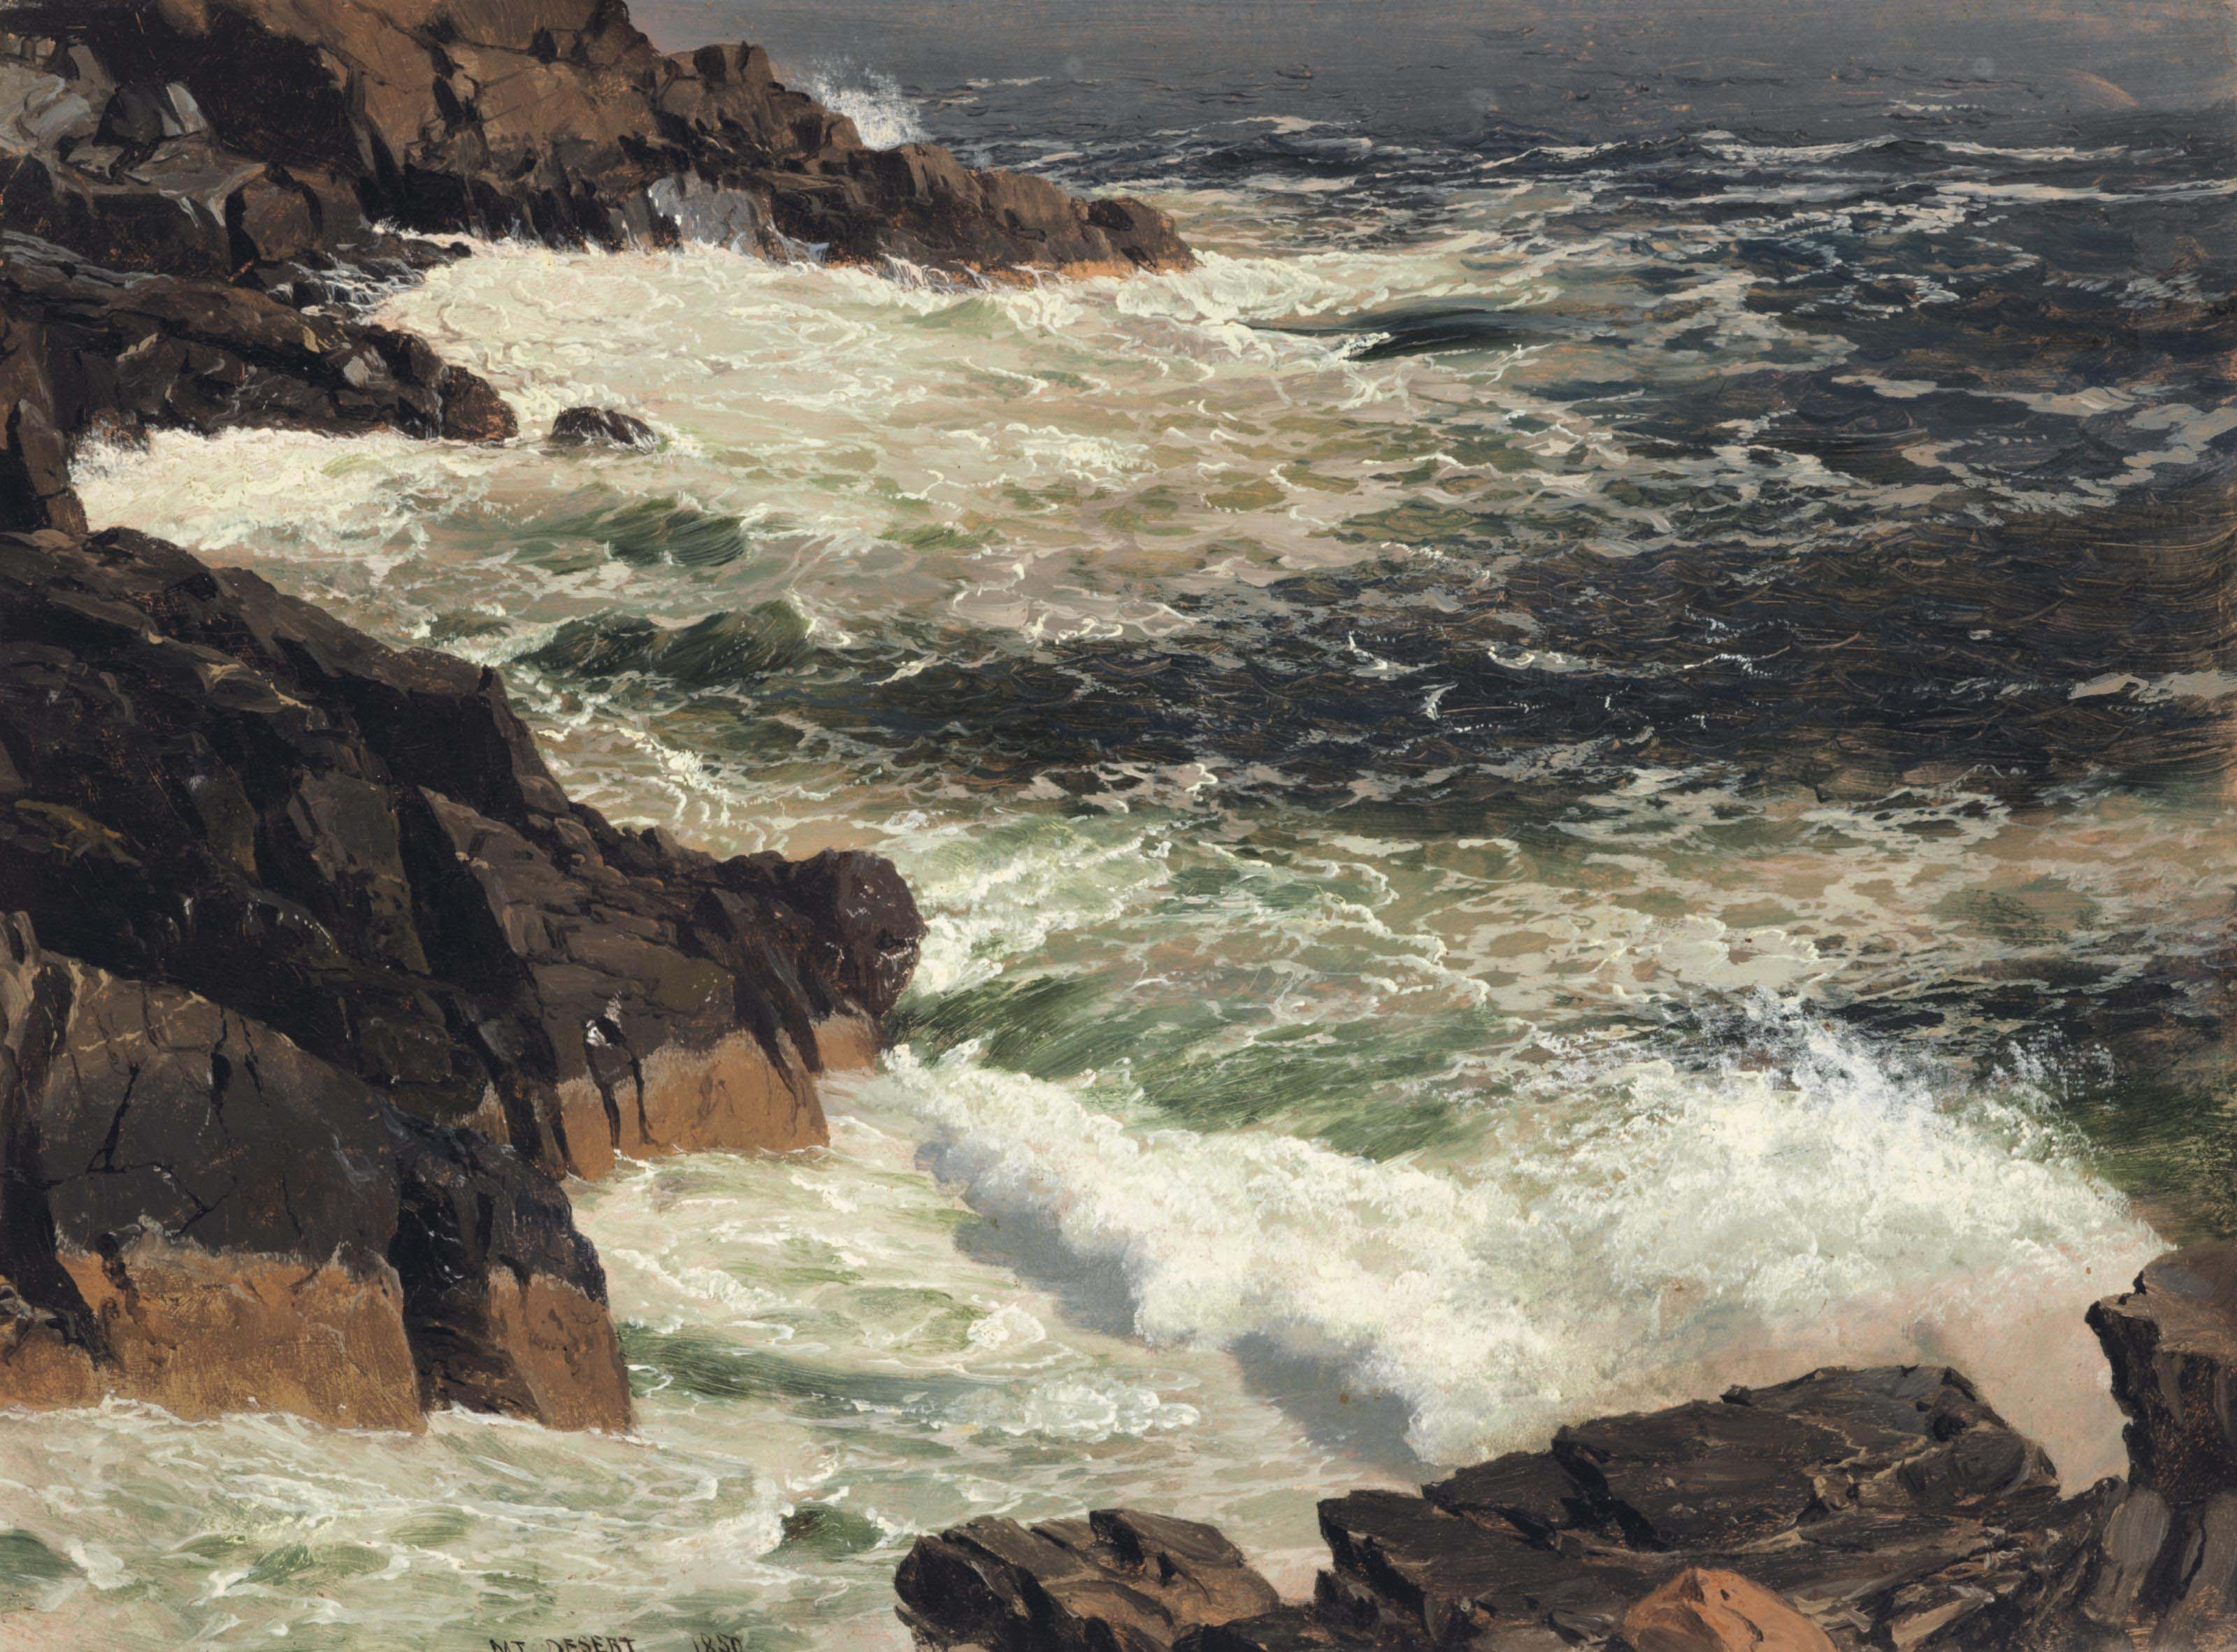 Rough Surf, Mount Desert Island, Maine